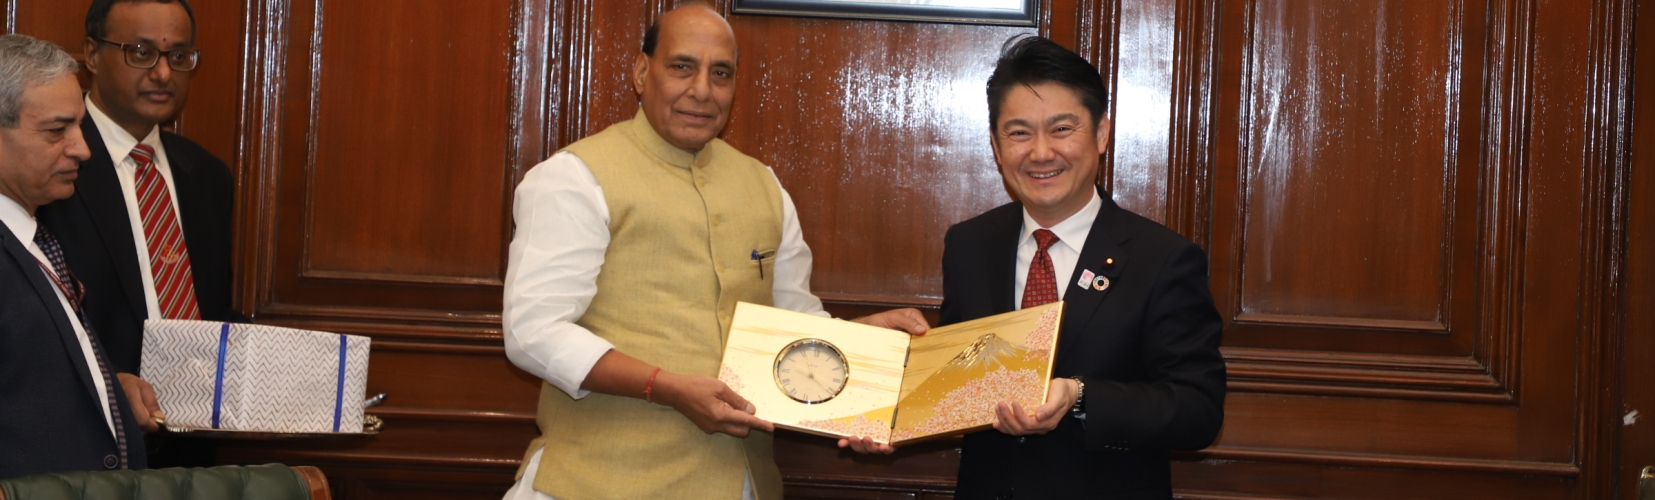 Hon'ble HM meeting with Minister of Justice, Japan on 10.01.2019.